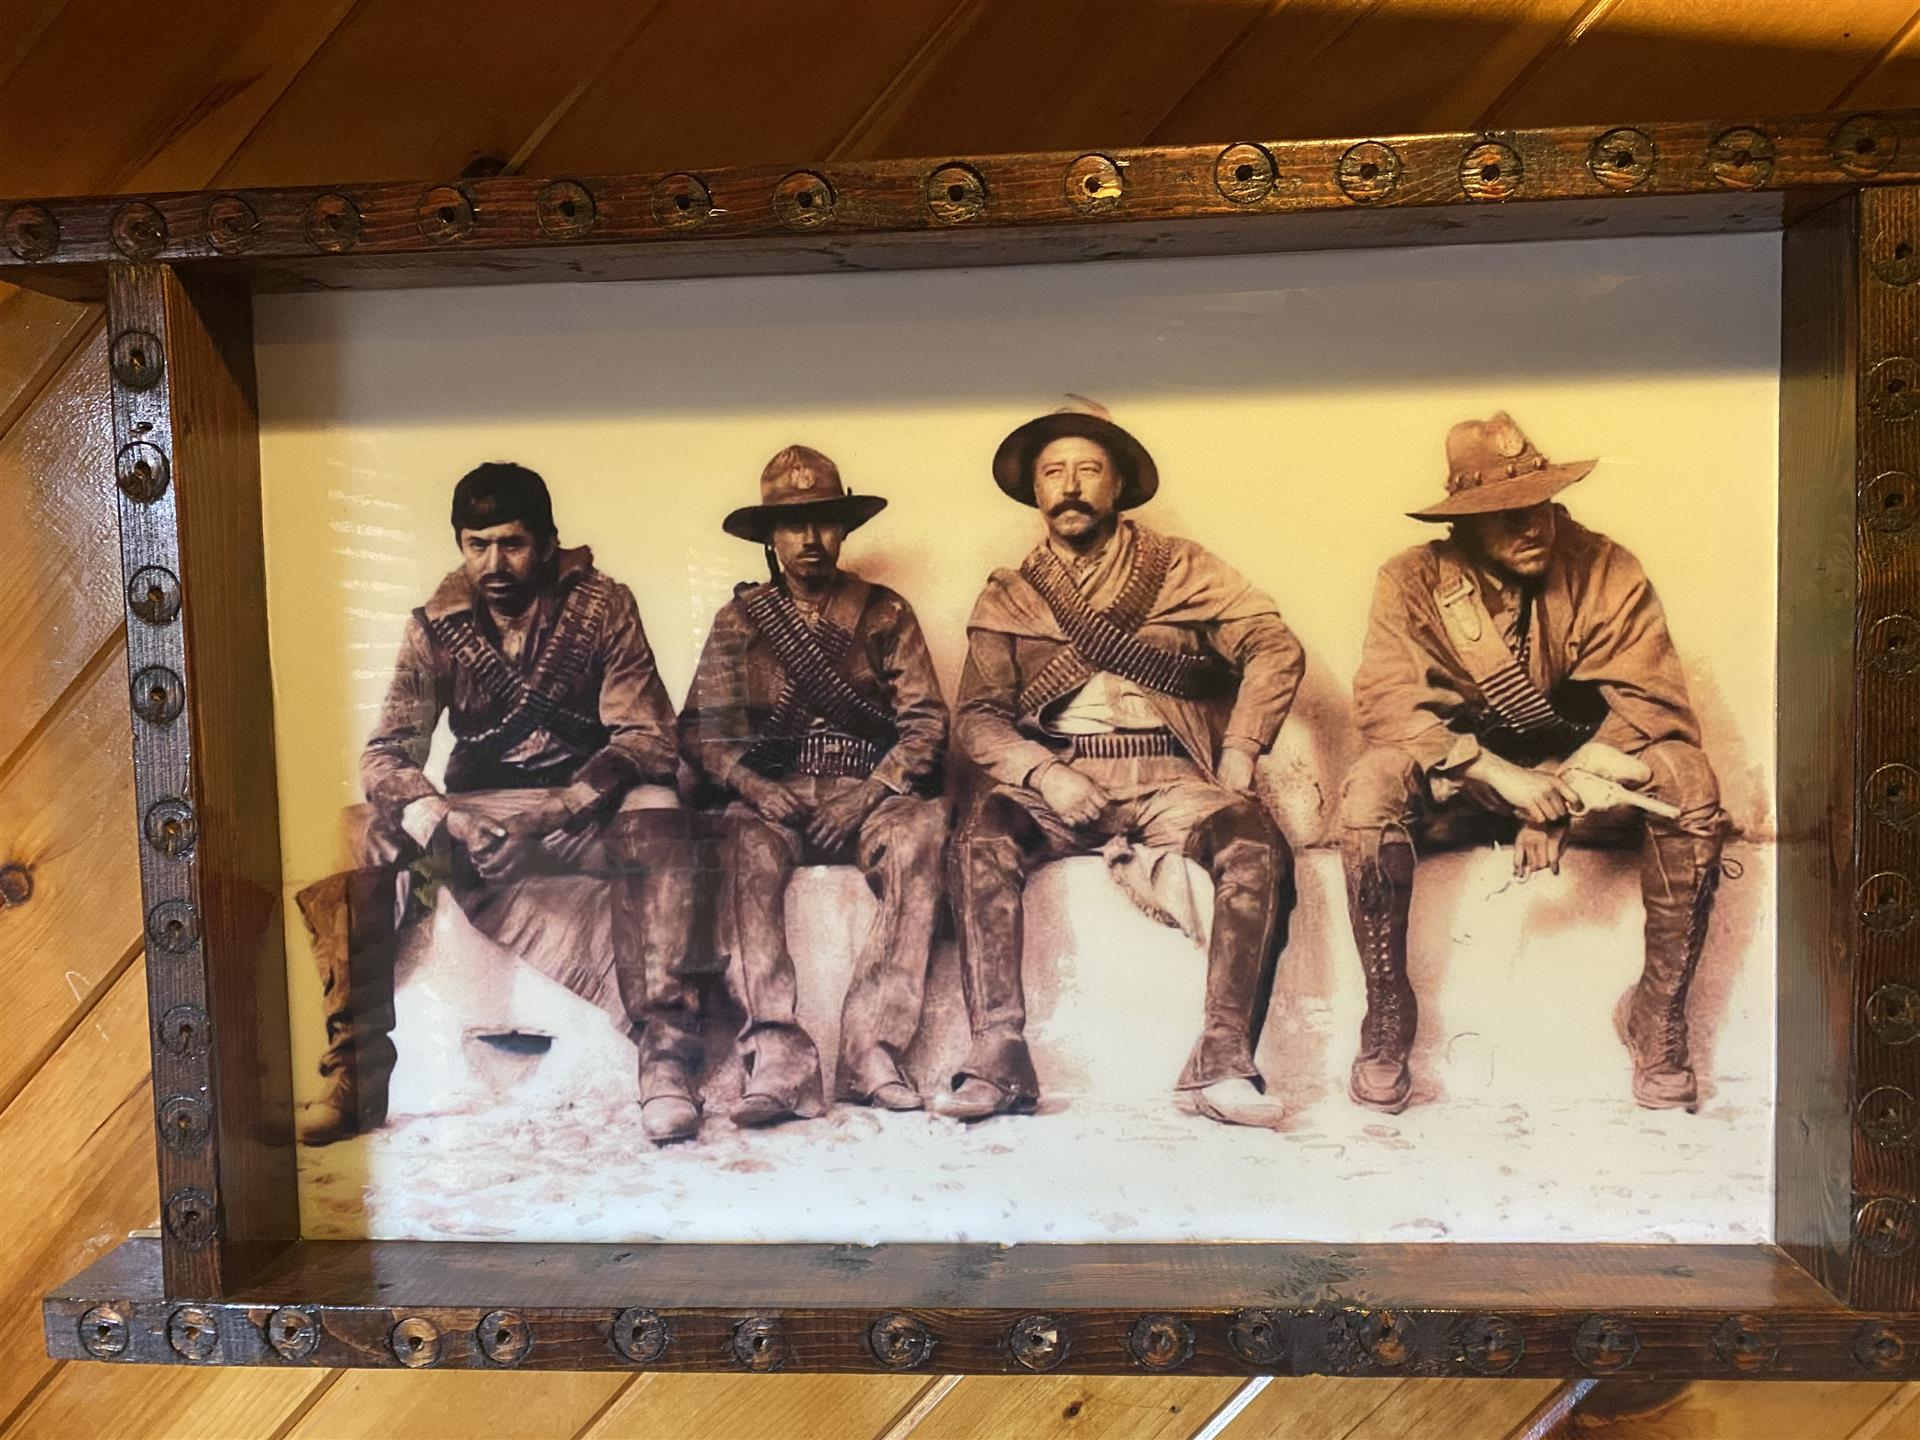 vintage photo of mexican soldiers sitting on a ledge